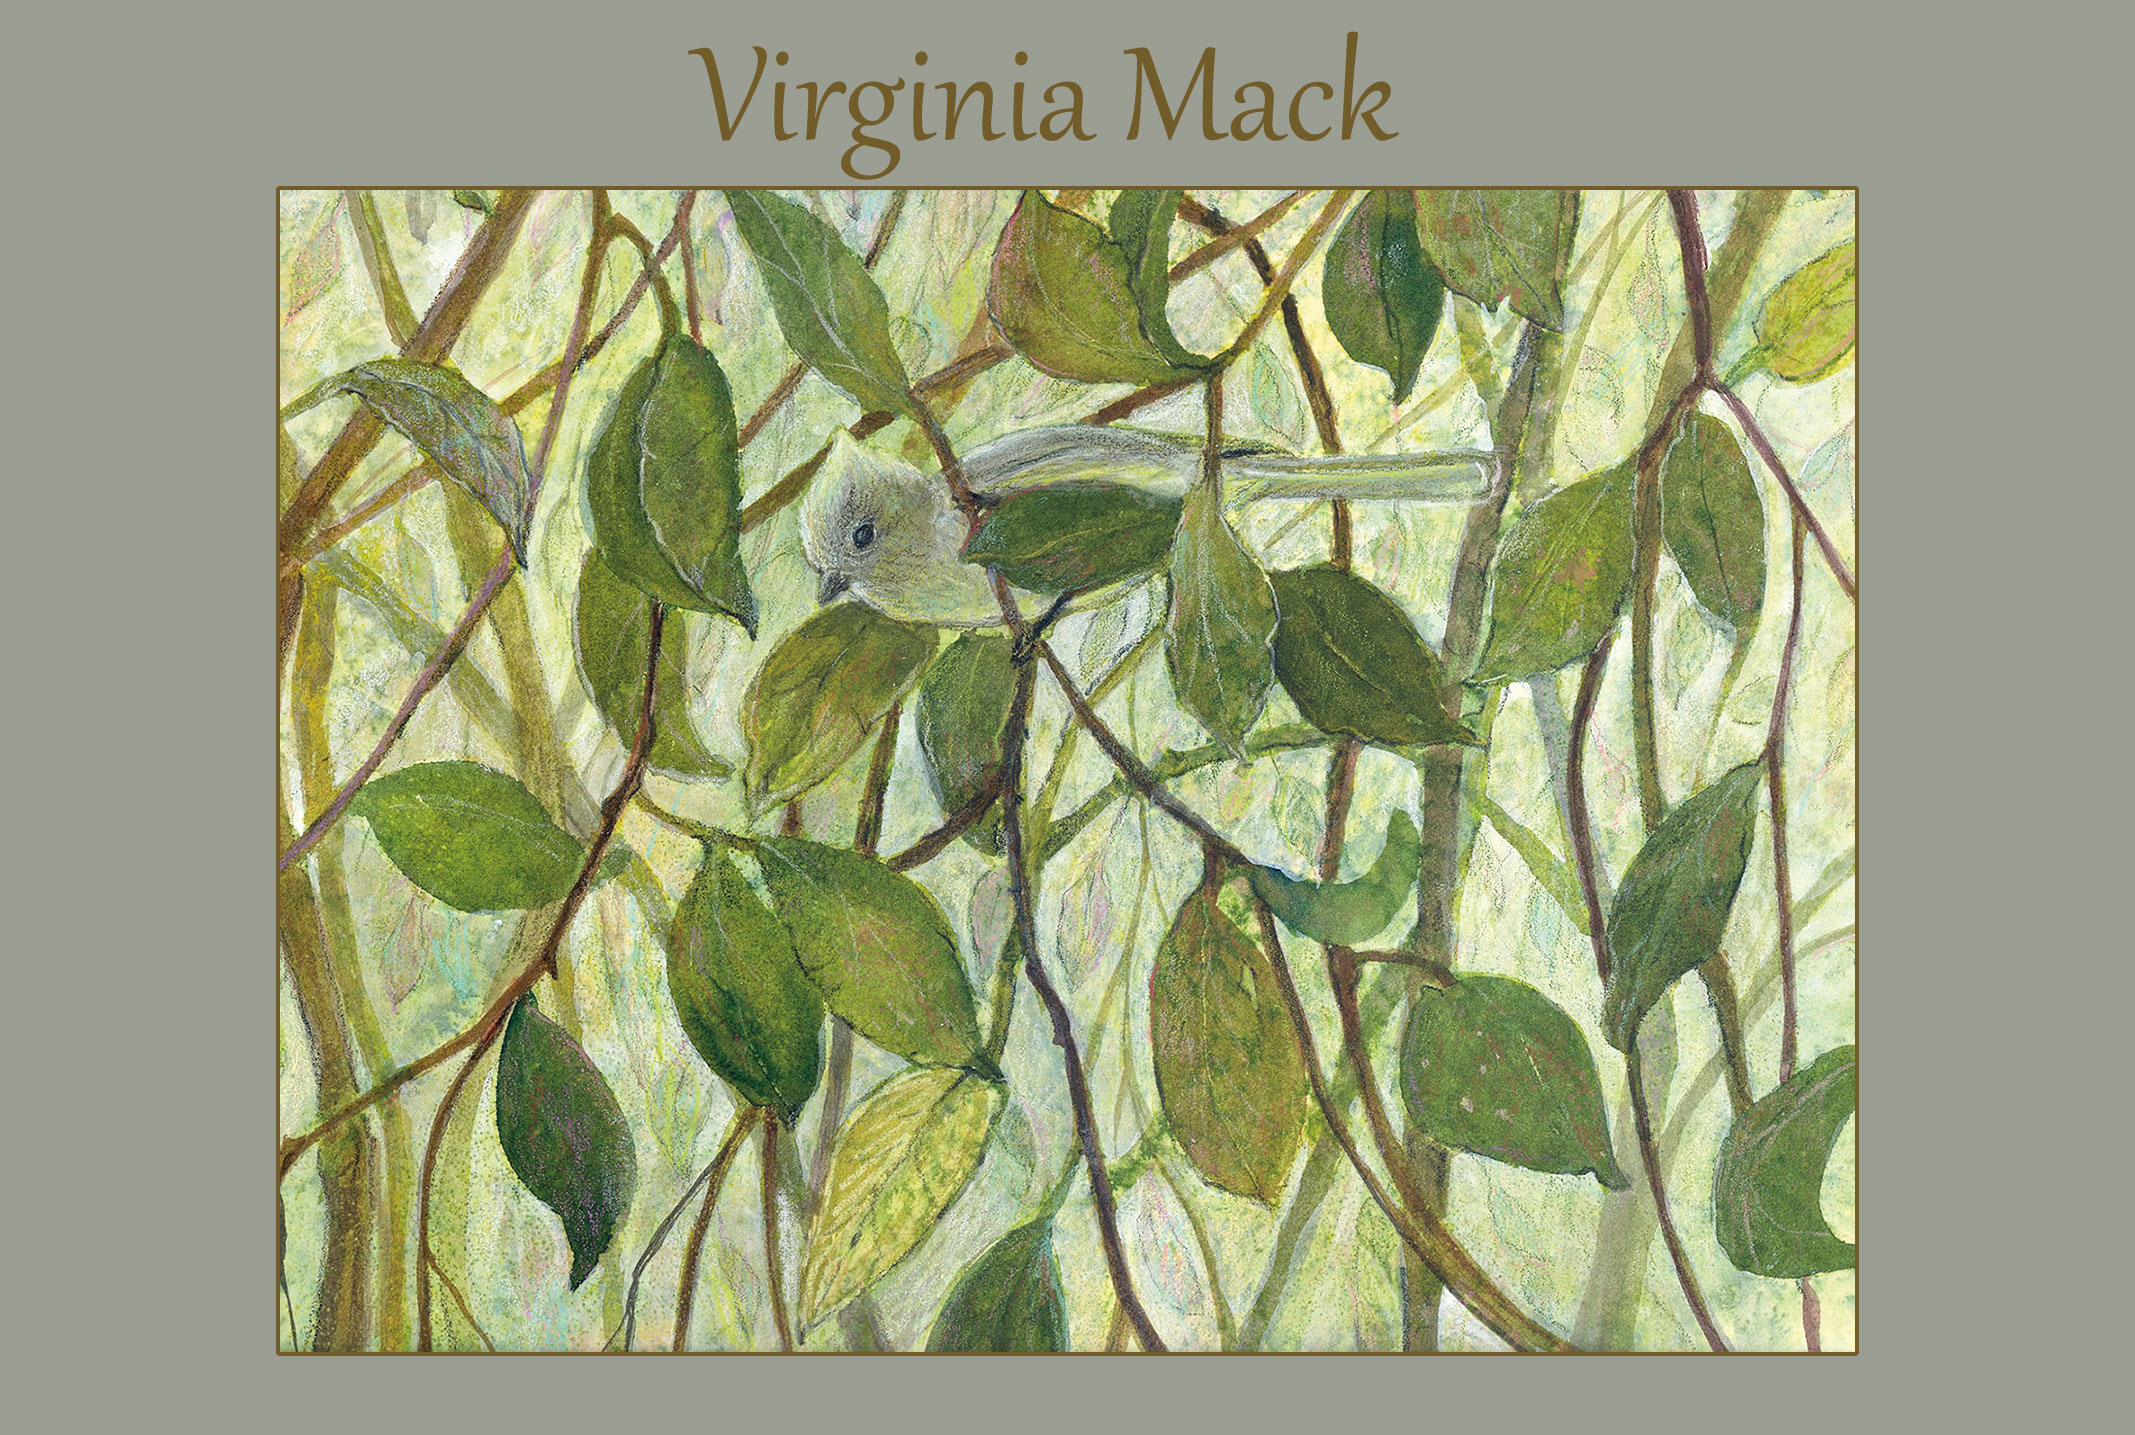 Virginia Mack, Featured Artist August 2020